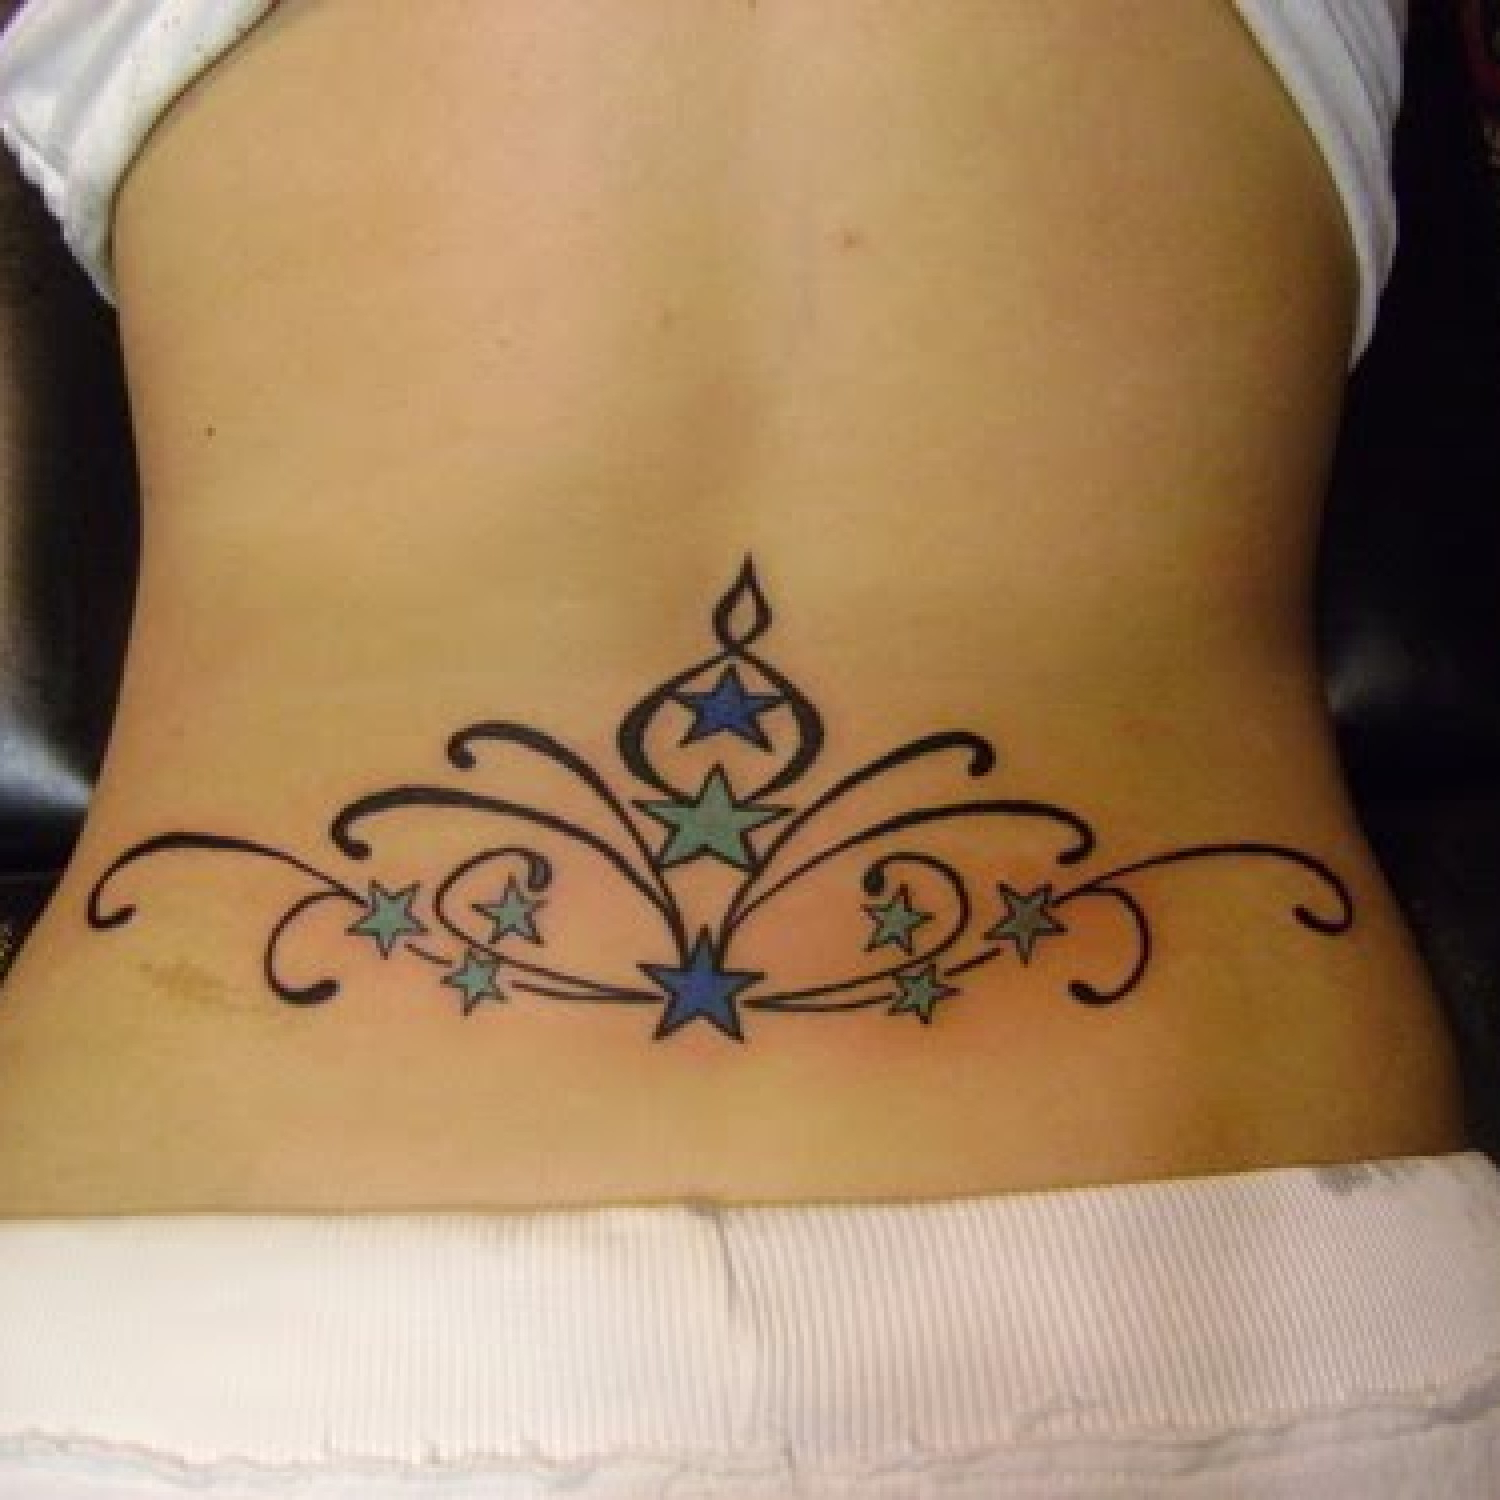 Girl Lower Back Tattoo Designs 30 Awesome Lower Back Tattoos For Girls   Tattoo Collections